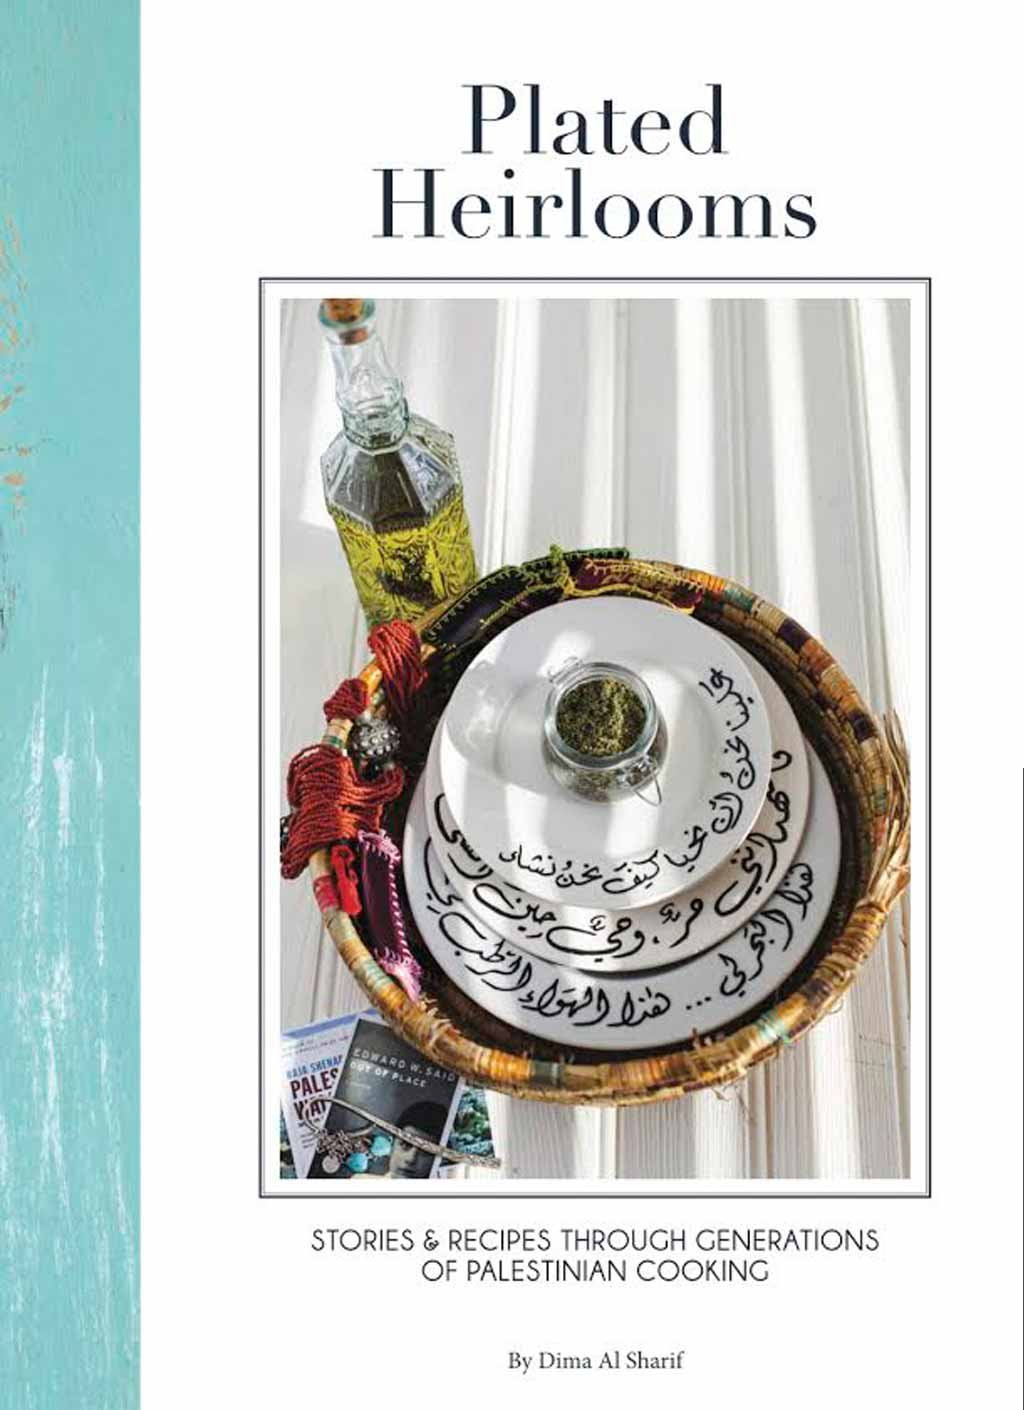 plated-heirlooms